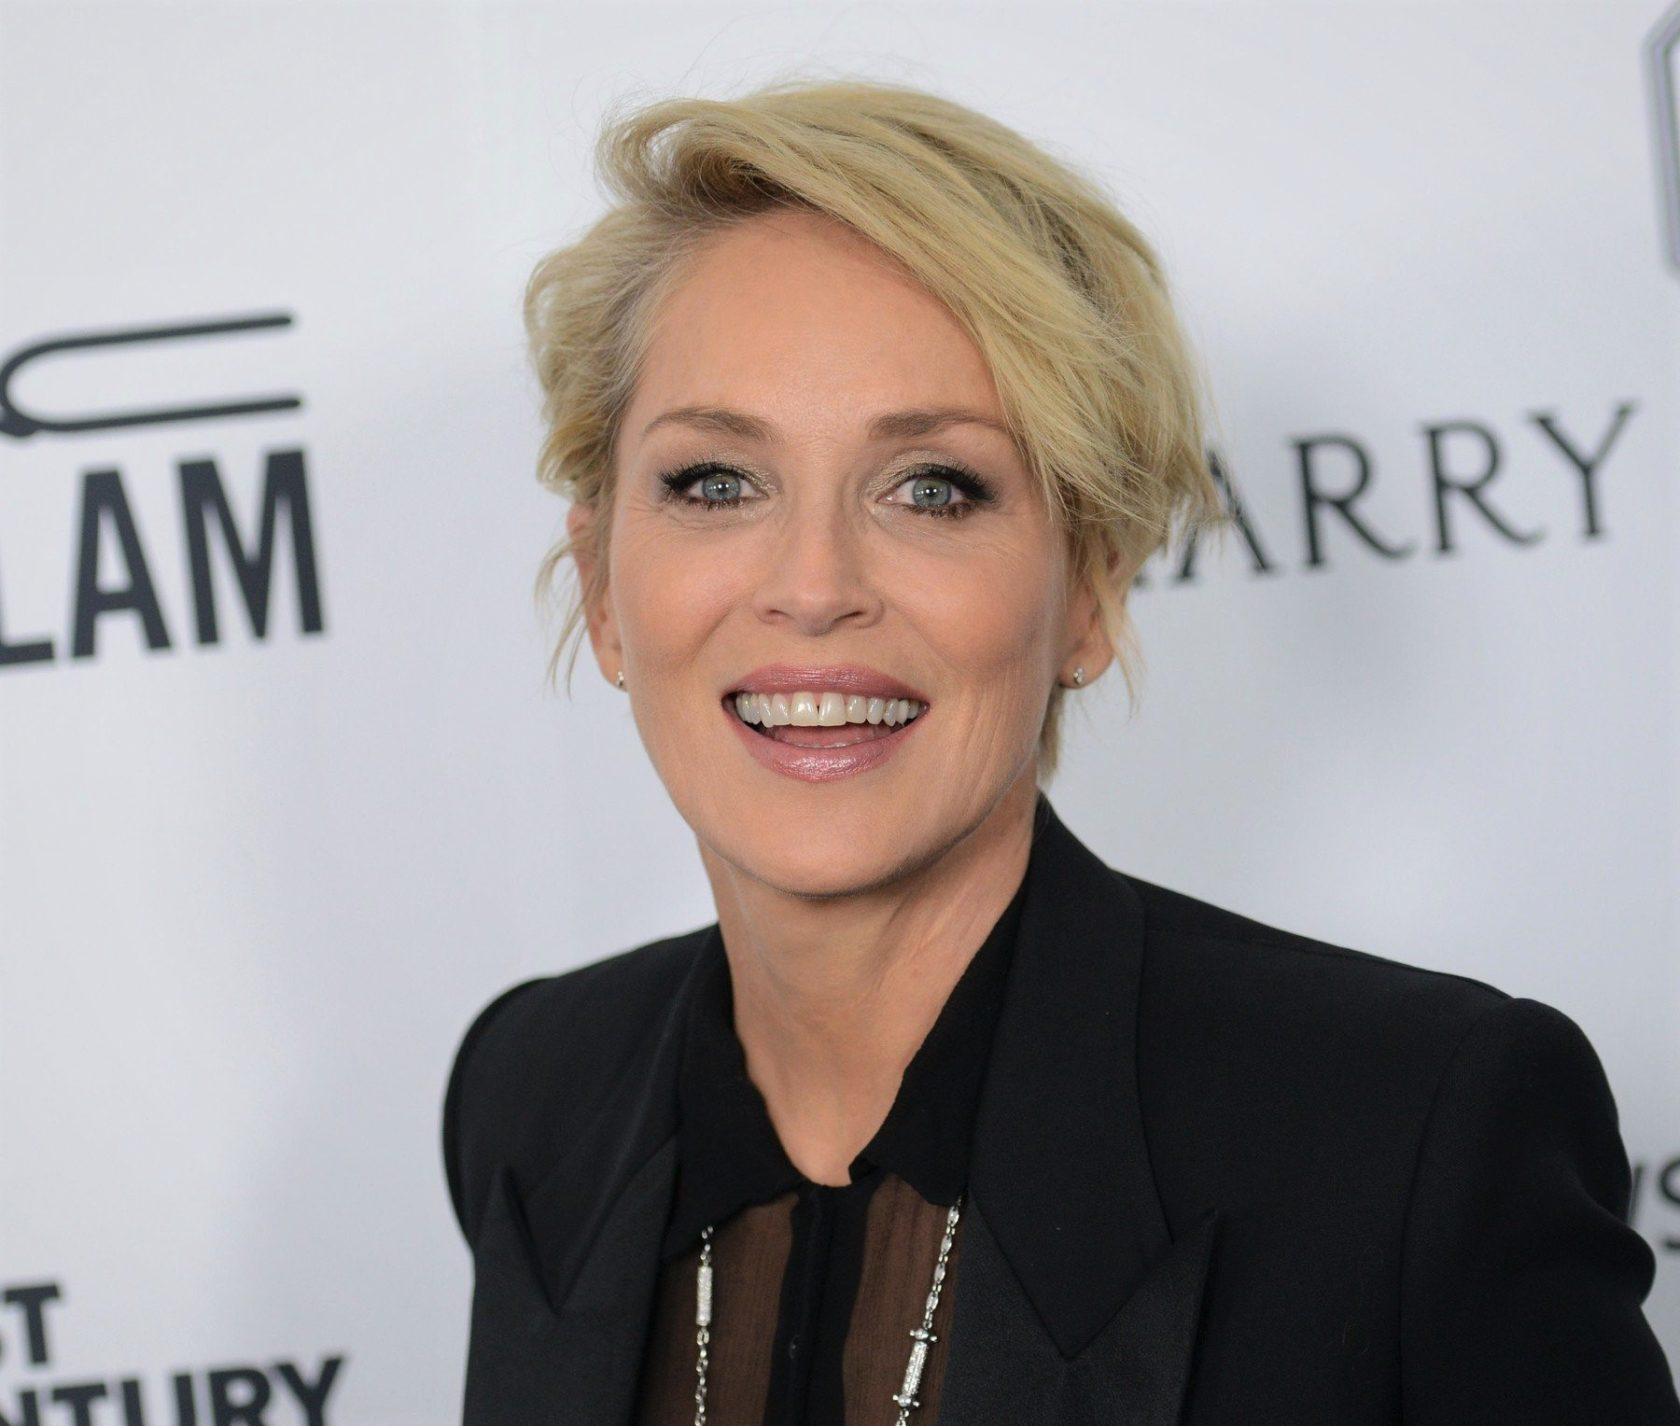 SHARON STONE @ the 2015 amFAR's Inspiration Gala held @ the Milk studios. October 29, 2015, Image: 264285284, License: Rights-managed, Restrictions: AMERICA, Model Release: no, Credit line: Profimedia, Visual